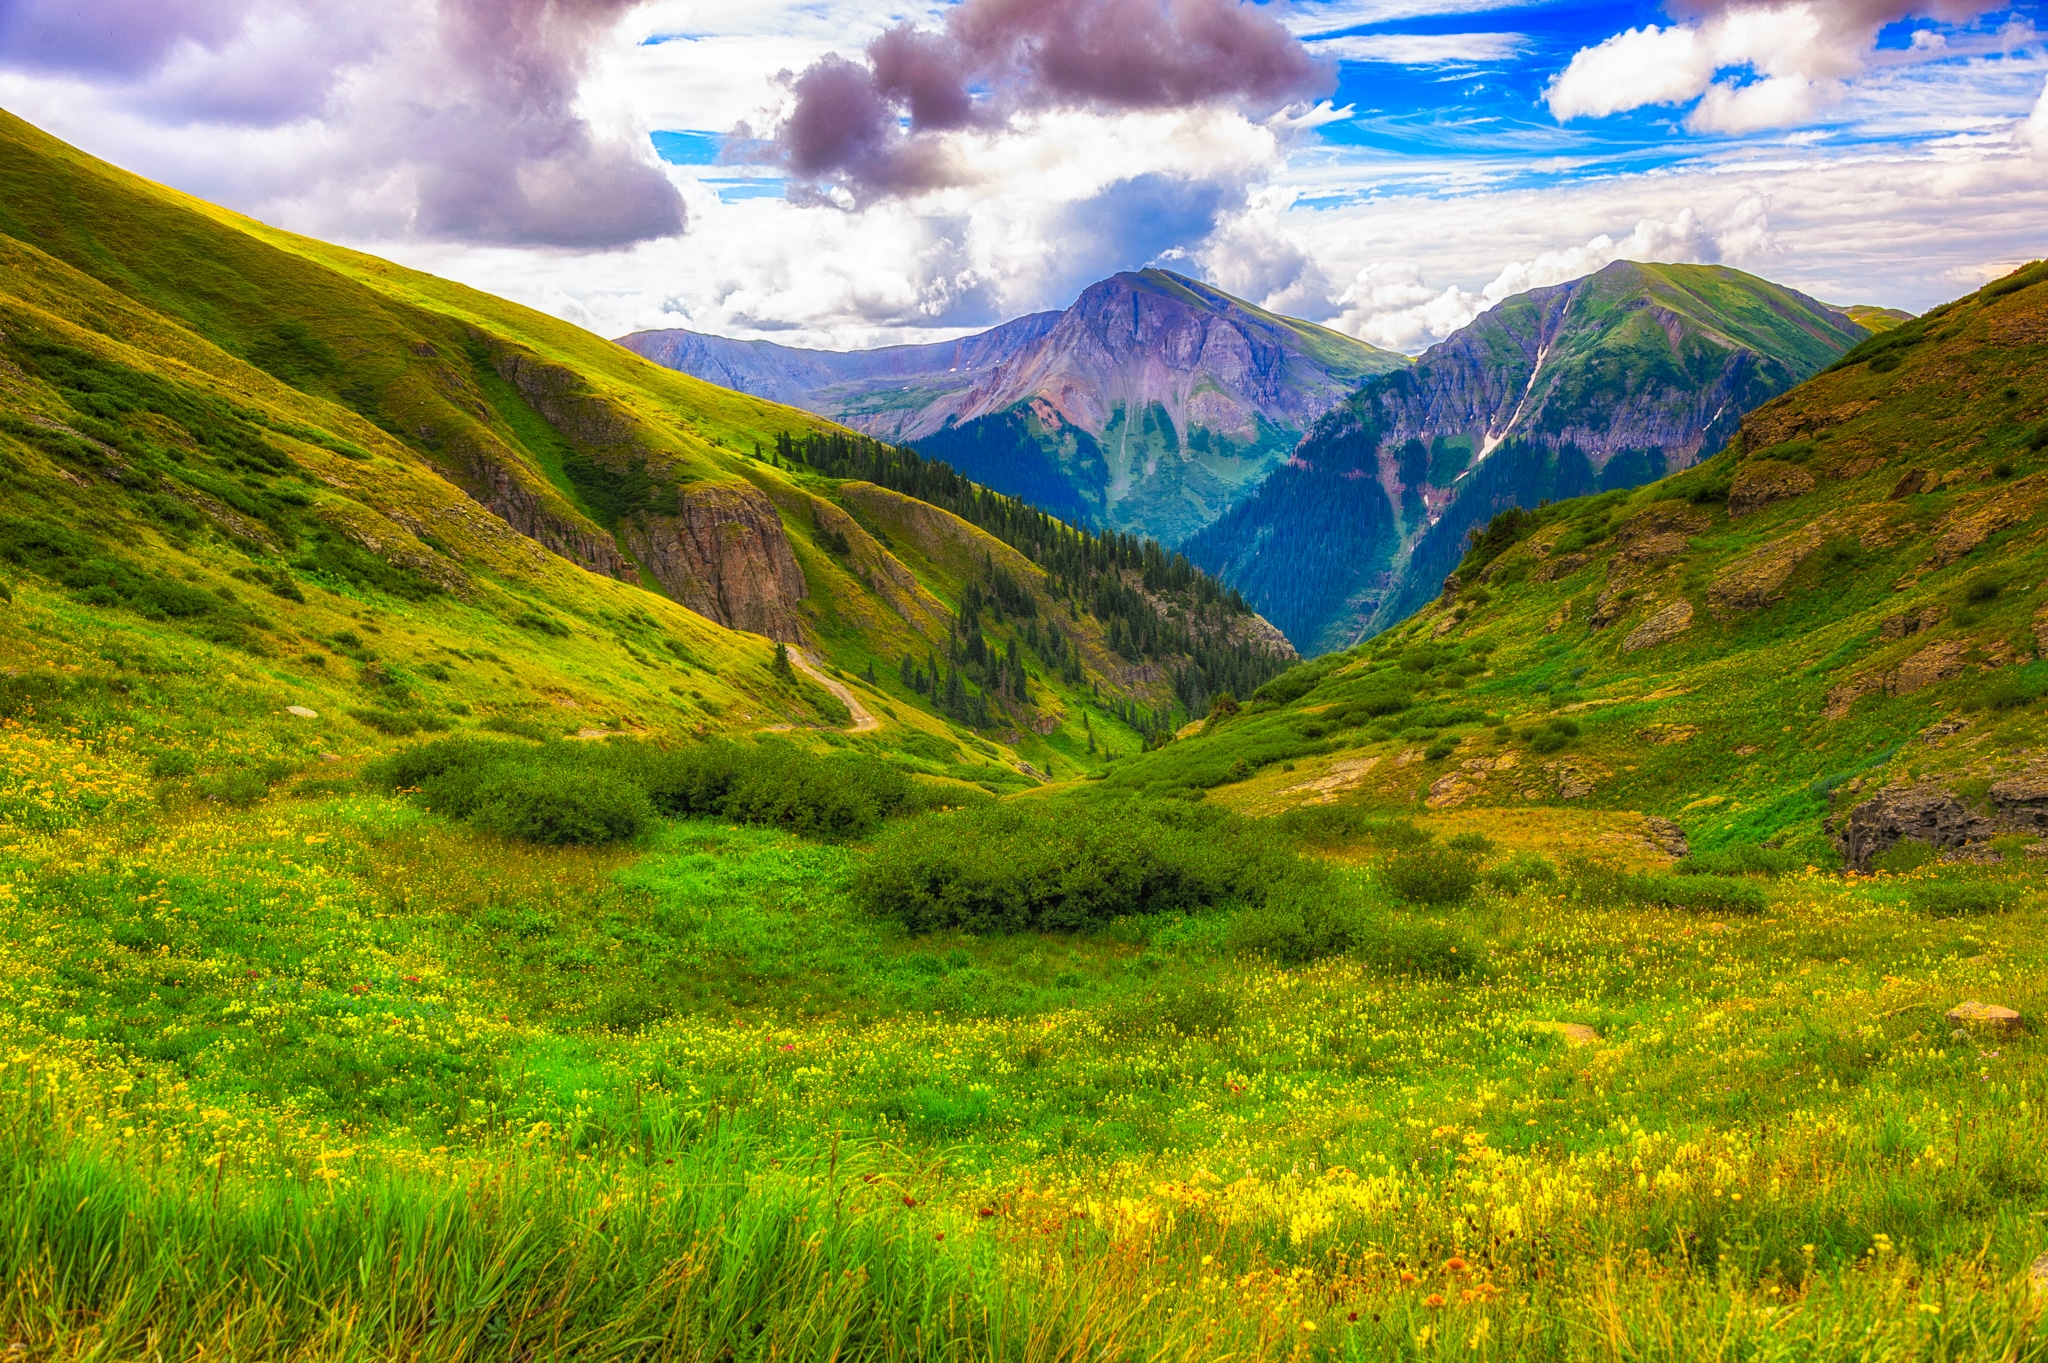 Looking back along FS 815 toward the switchbacks, located in the mountains between Ouray and Silverton, Colorado.